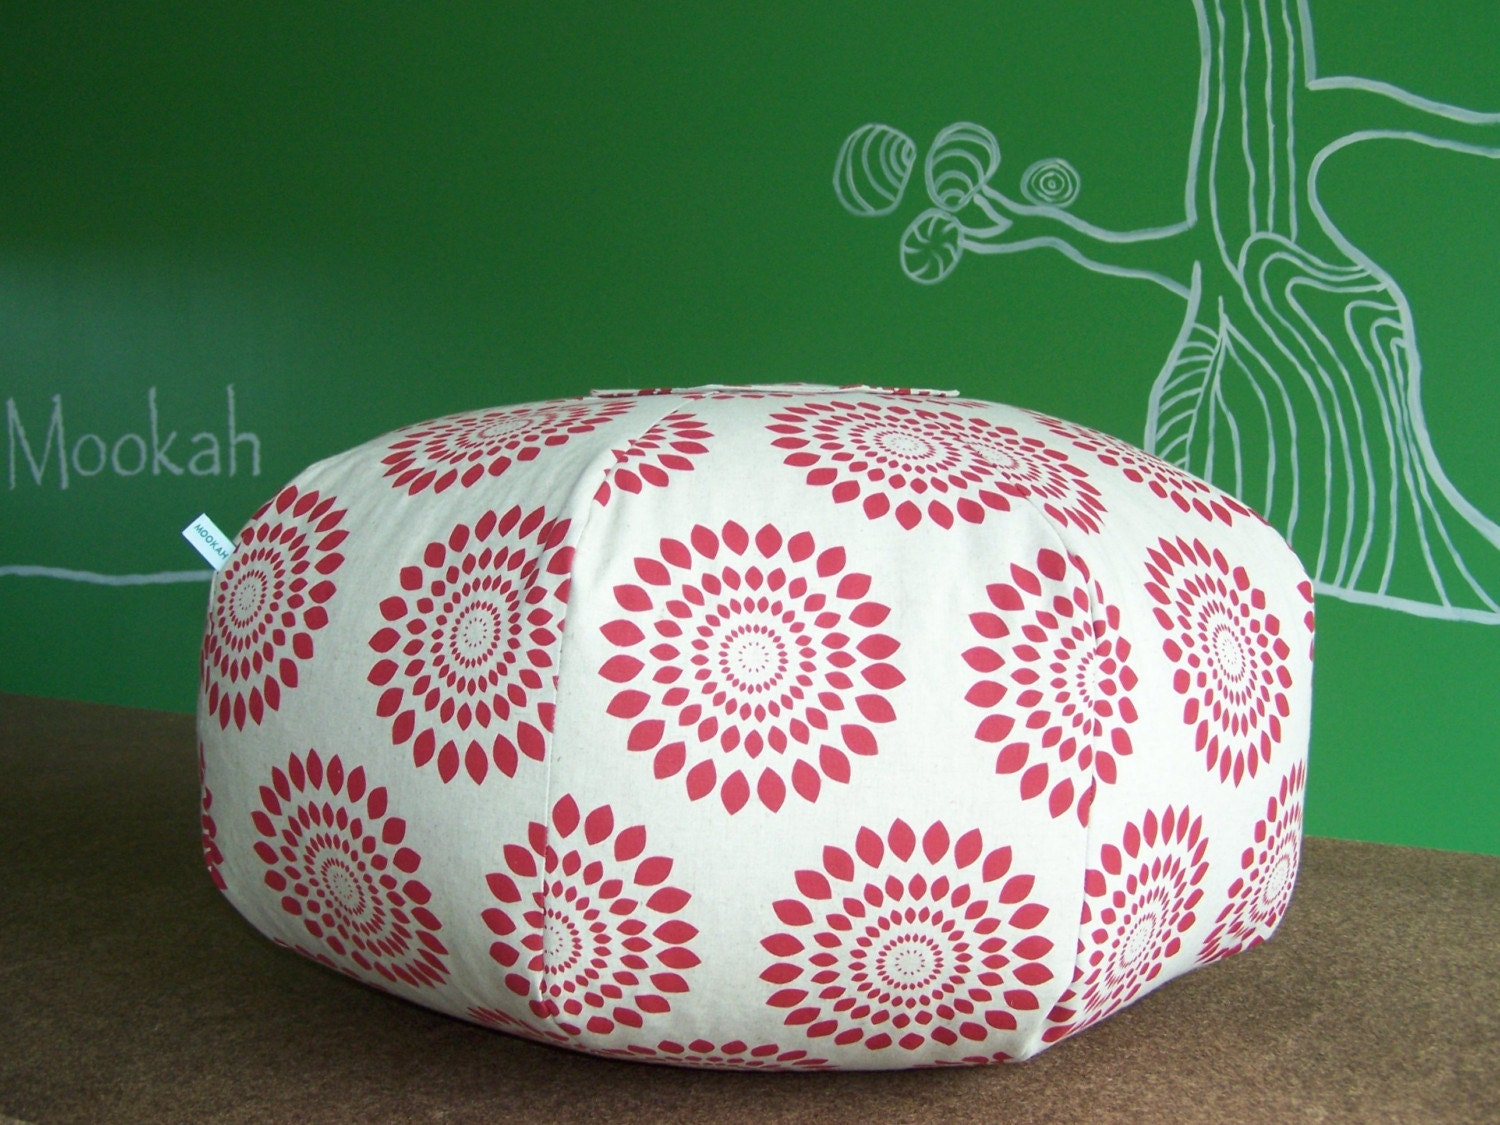 Hand Printed Floor Cushion in Unbleached Cotton/Linen - Sumor Print